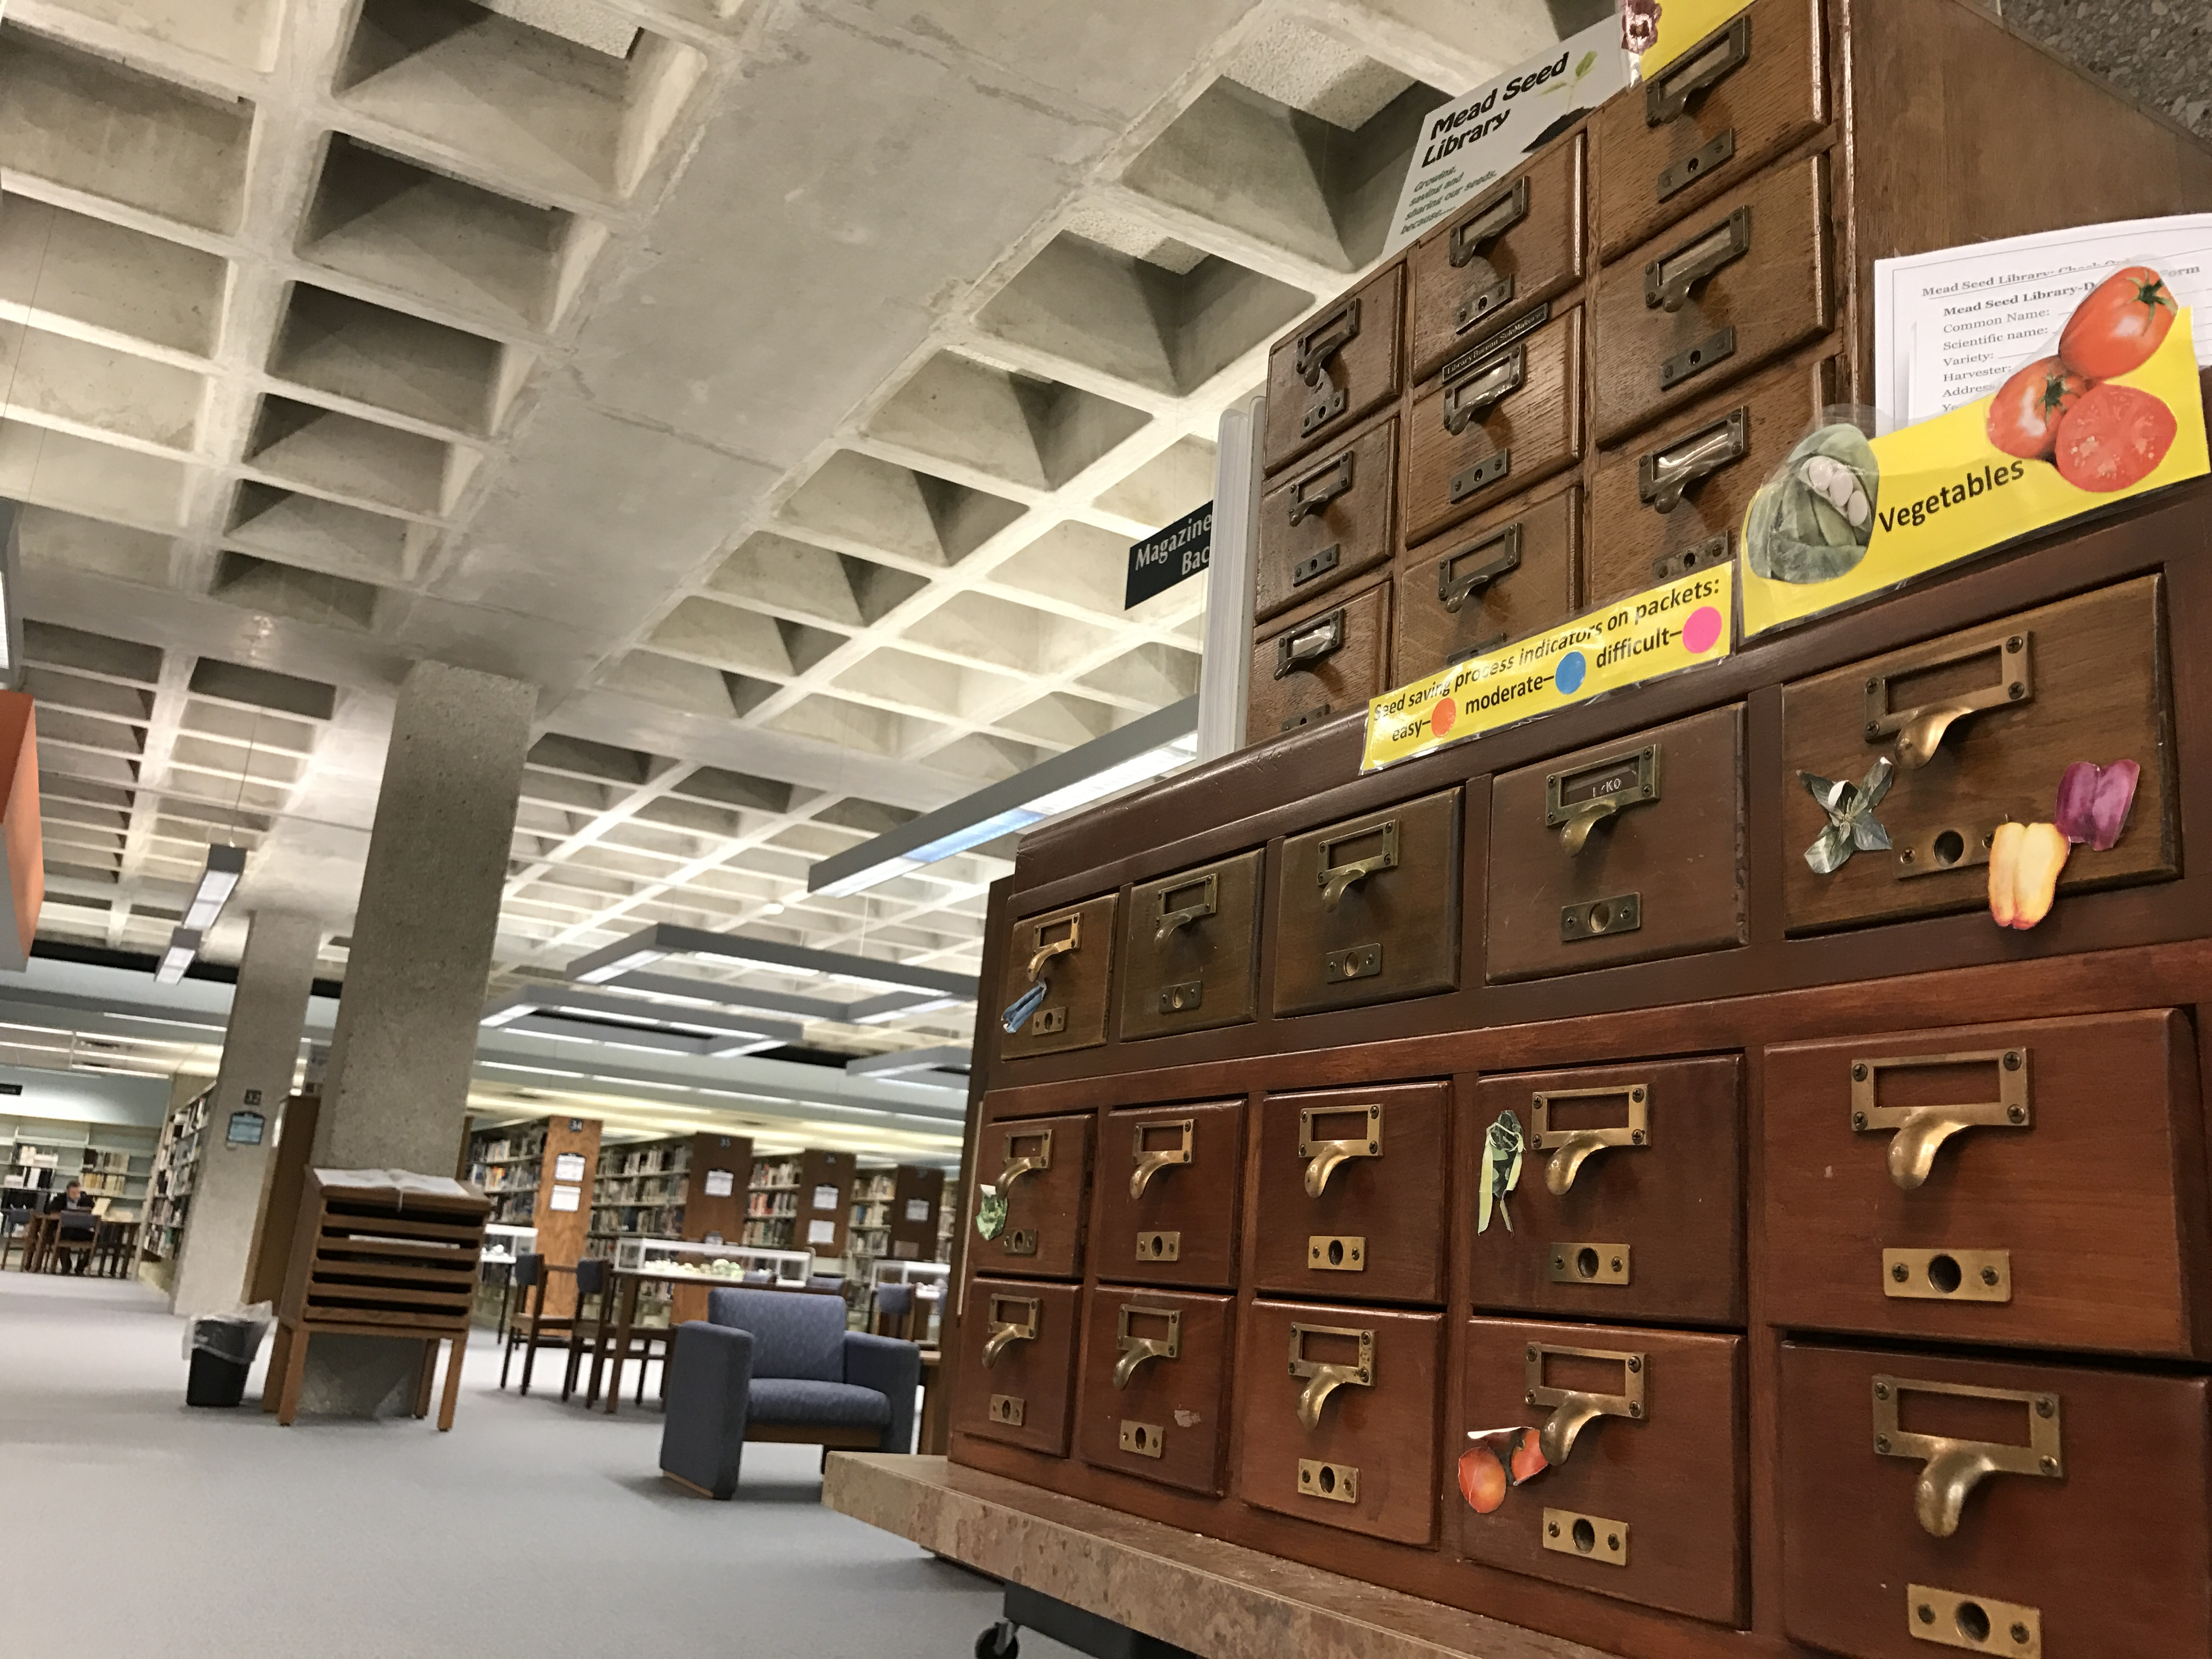 Mead Seed Library